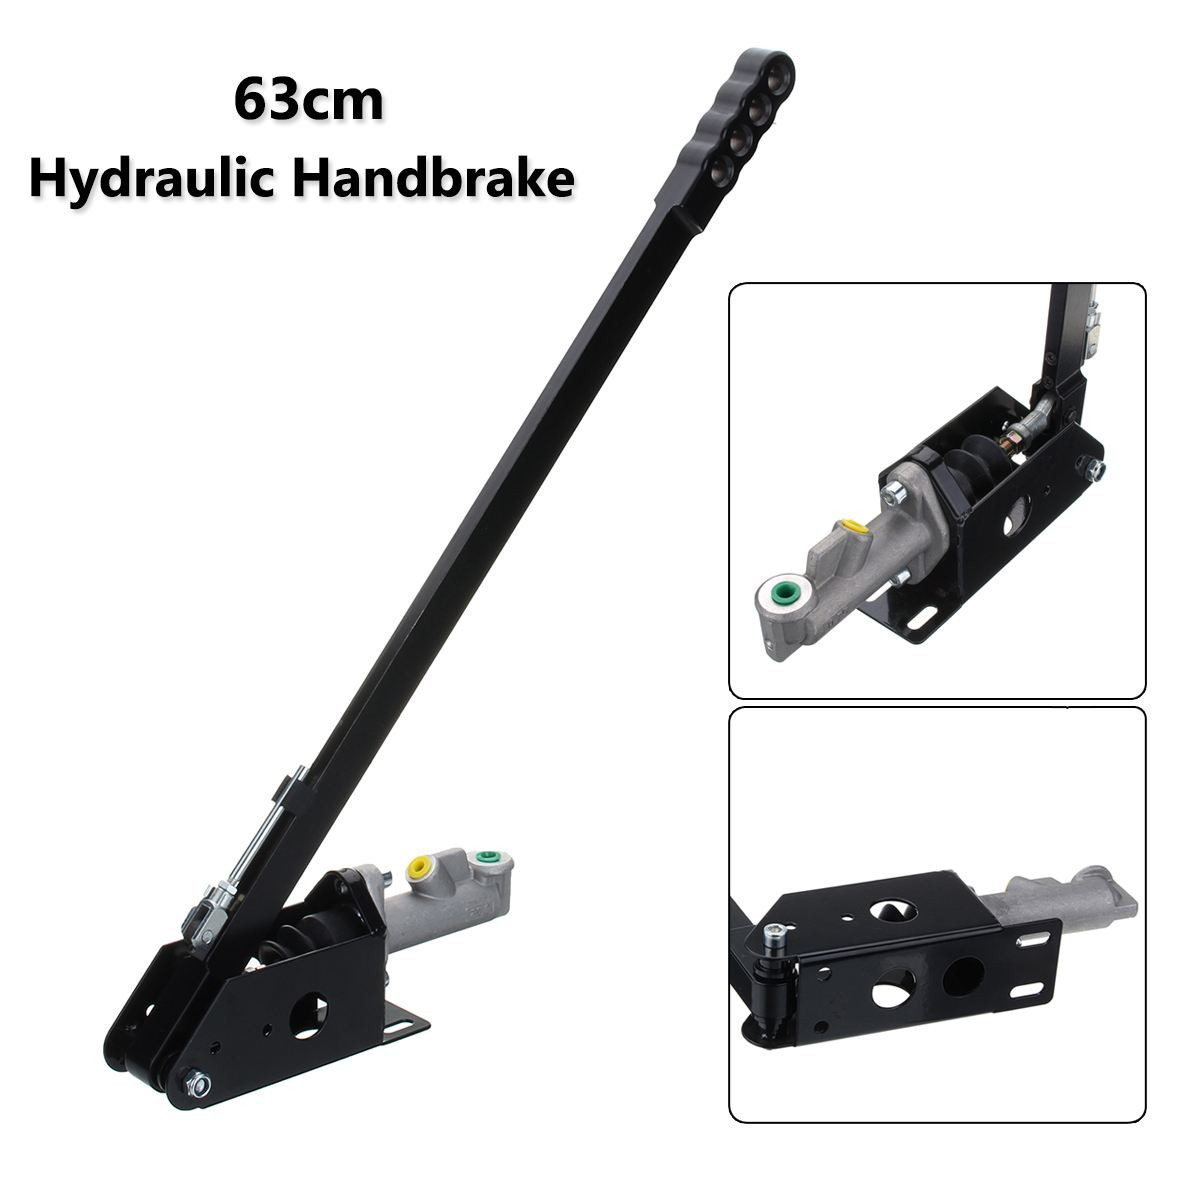 63cm Universal Long Vertical Hydraulic Handbrake Hydro E-brake Drift Race Hand Brake title=